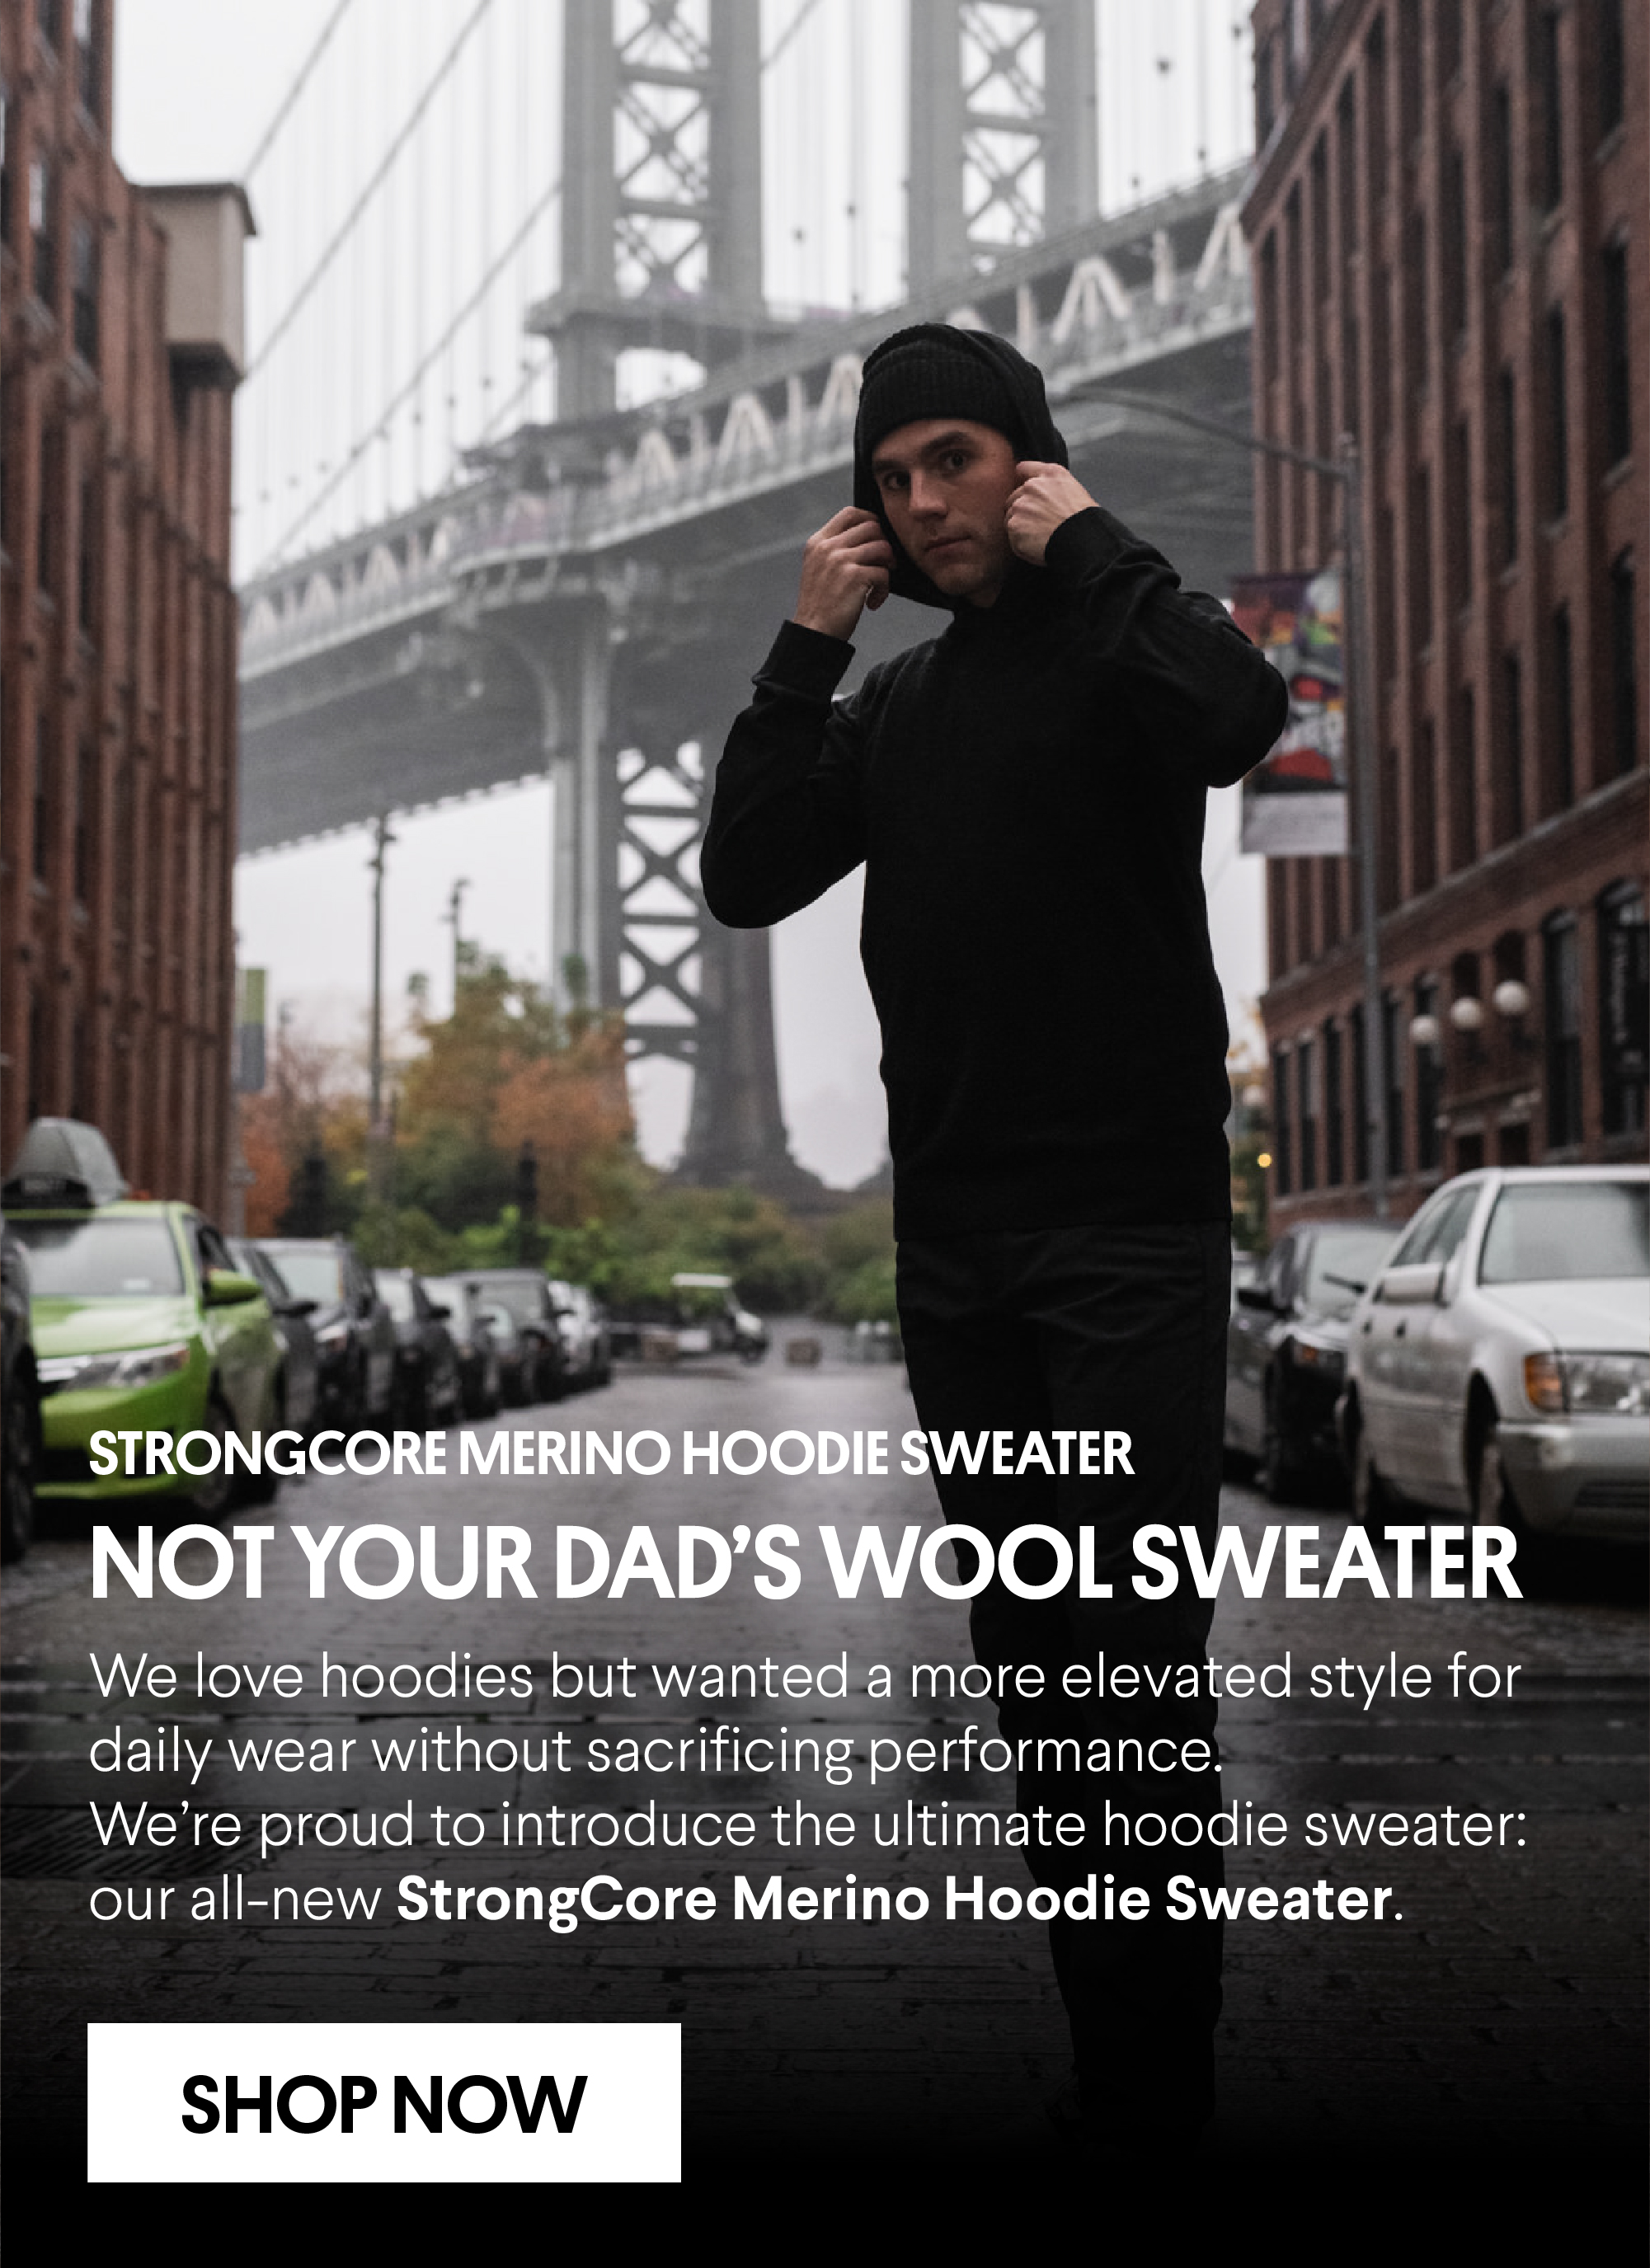 StrongCore Merino Hoodie Sweater - Not Your Dad's Wool Sweater - We love hoodies but wanted a more elevated style for daily wear without sacrificing performance. We're proud to introduce the ultimate hoodie sweater: our all-new StrongCore Merino Hoodie Sweater.